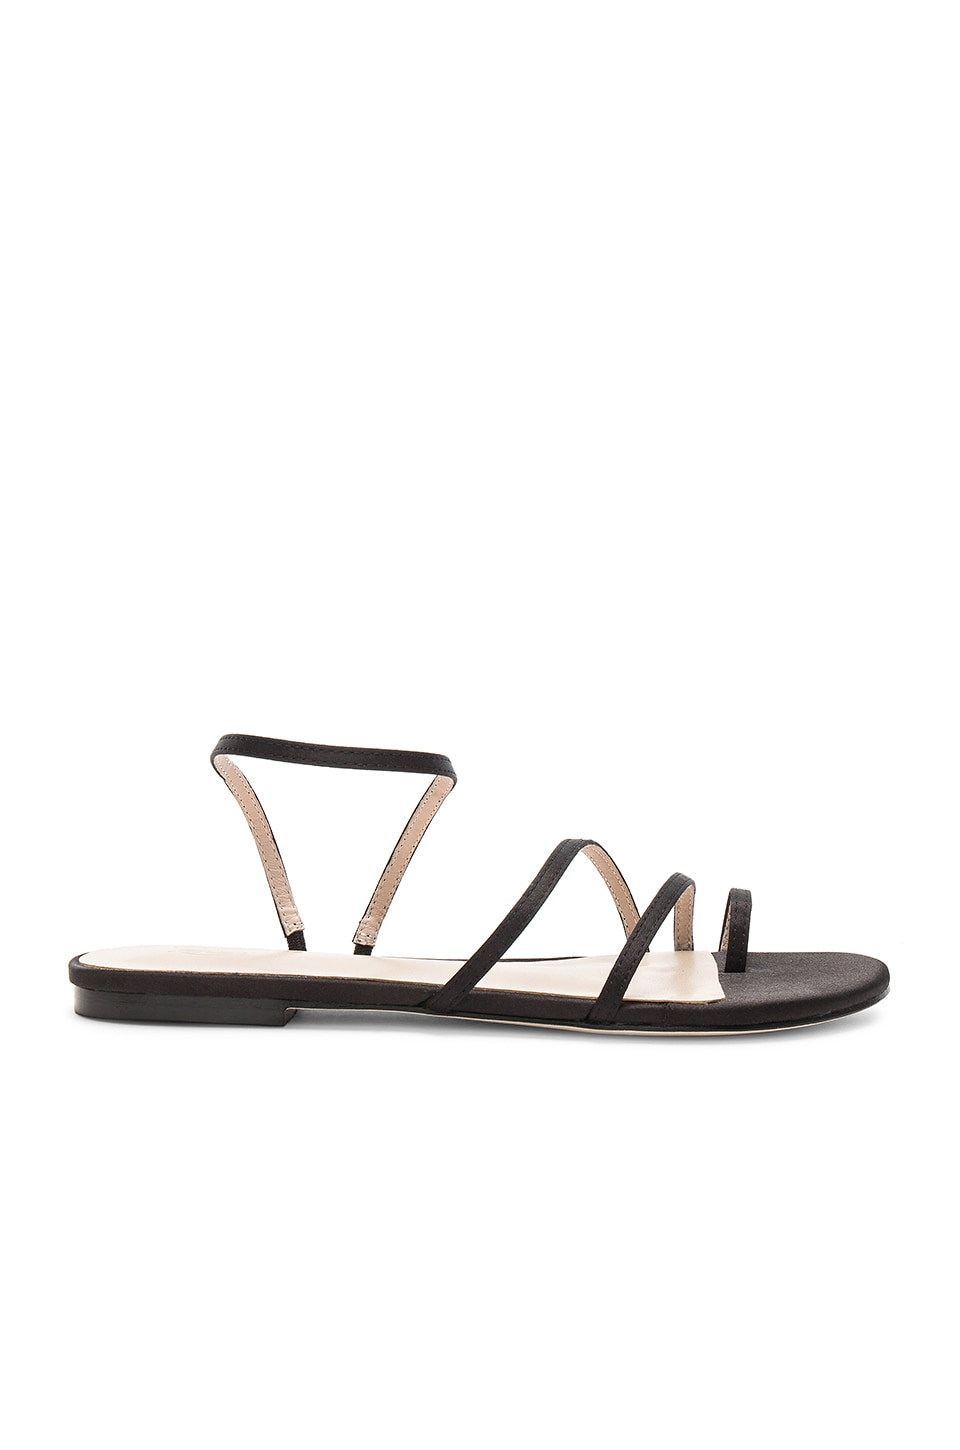 RAYE x House Of Harlow 1960 Isolla Sandal in Black